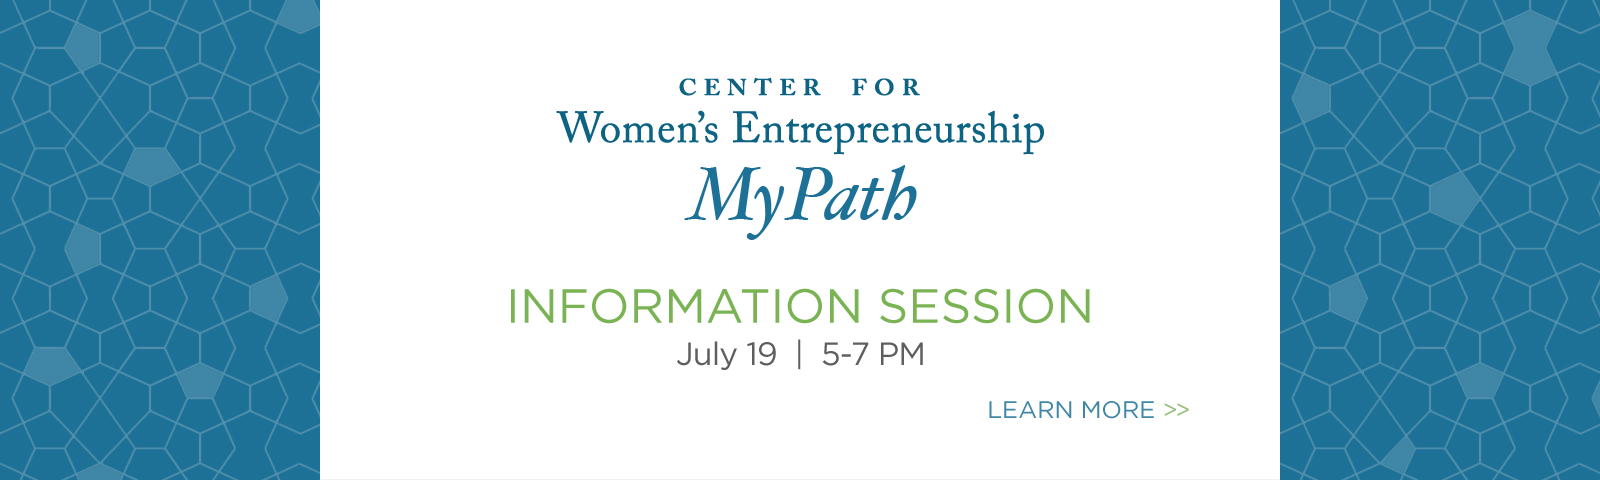 My Path - Information Session